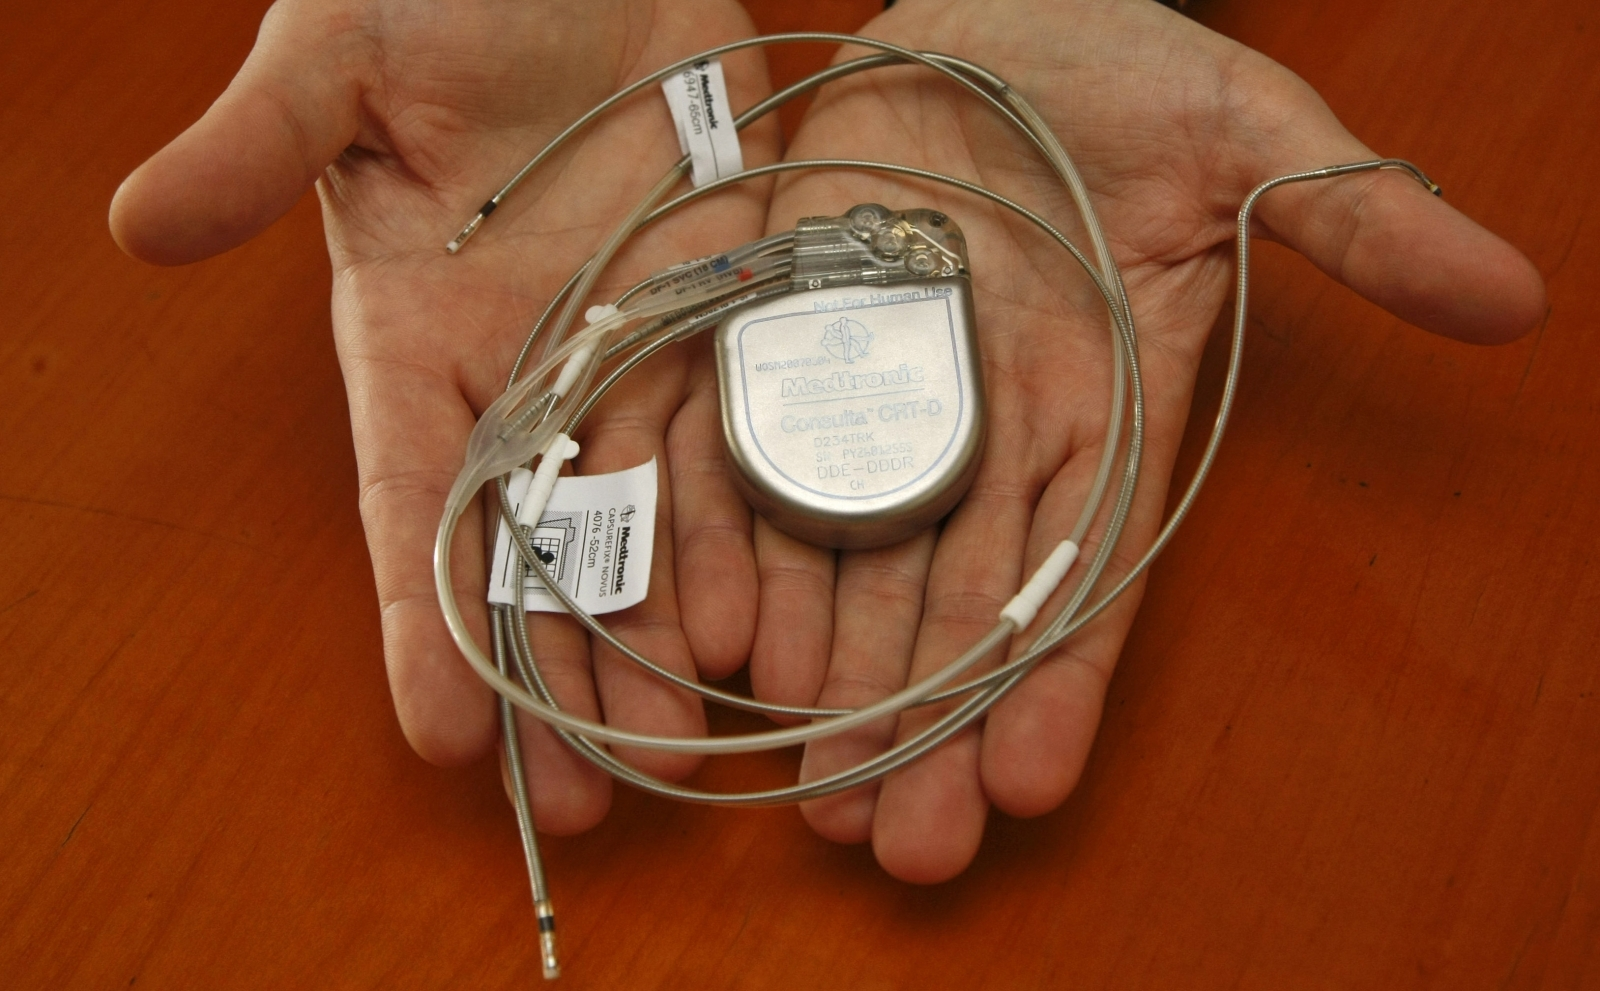 Pacemaker patch passes probe by Food and Drug Administration